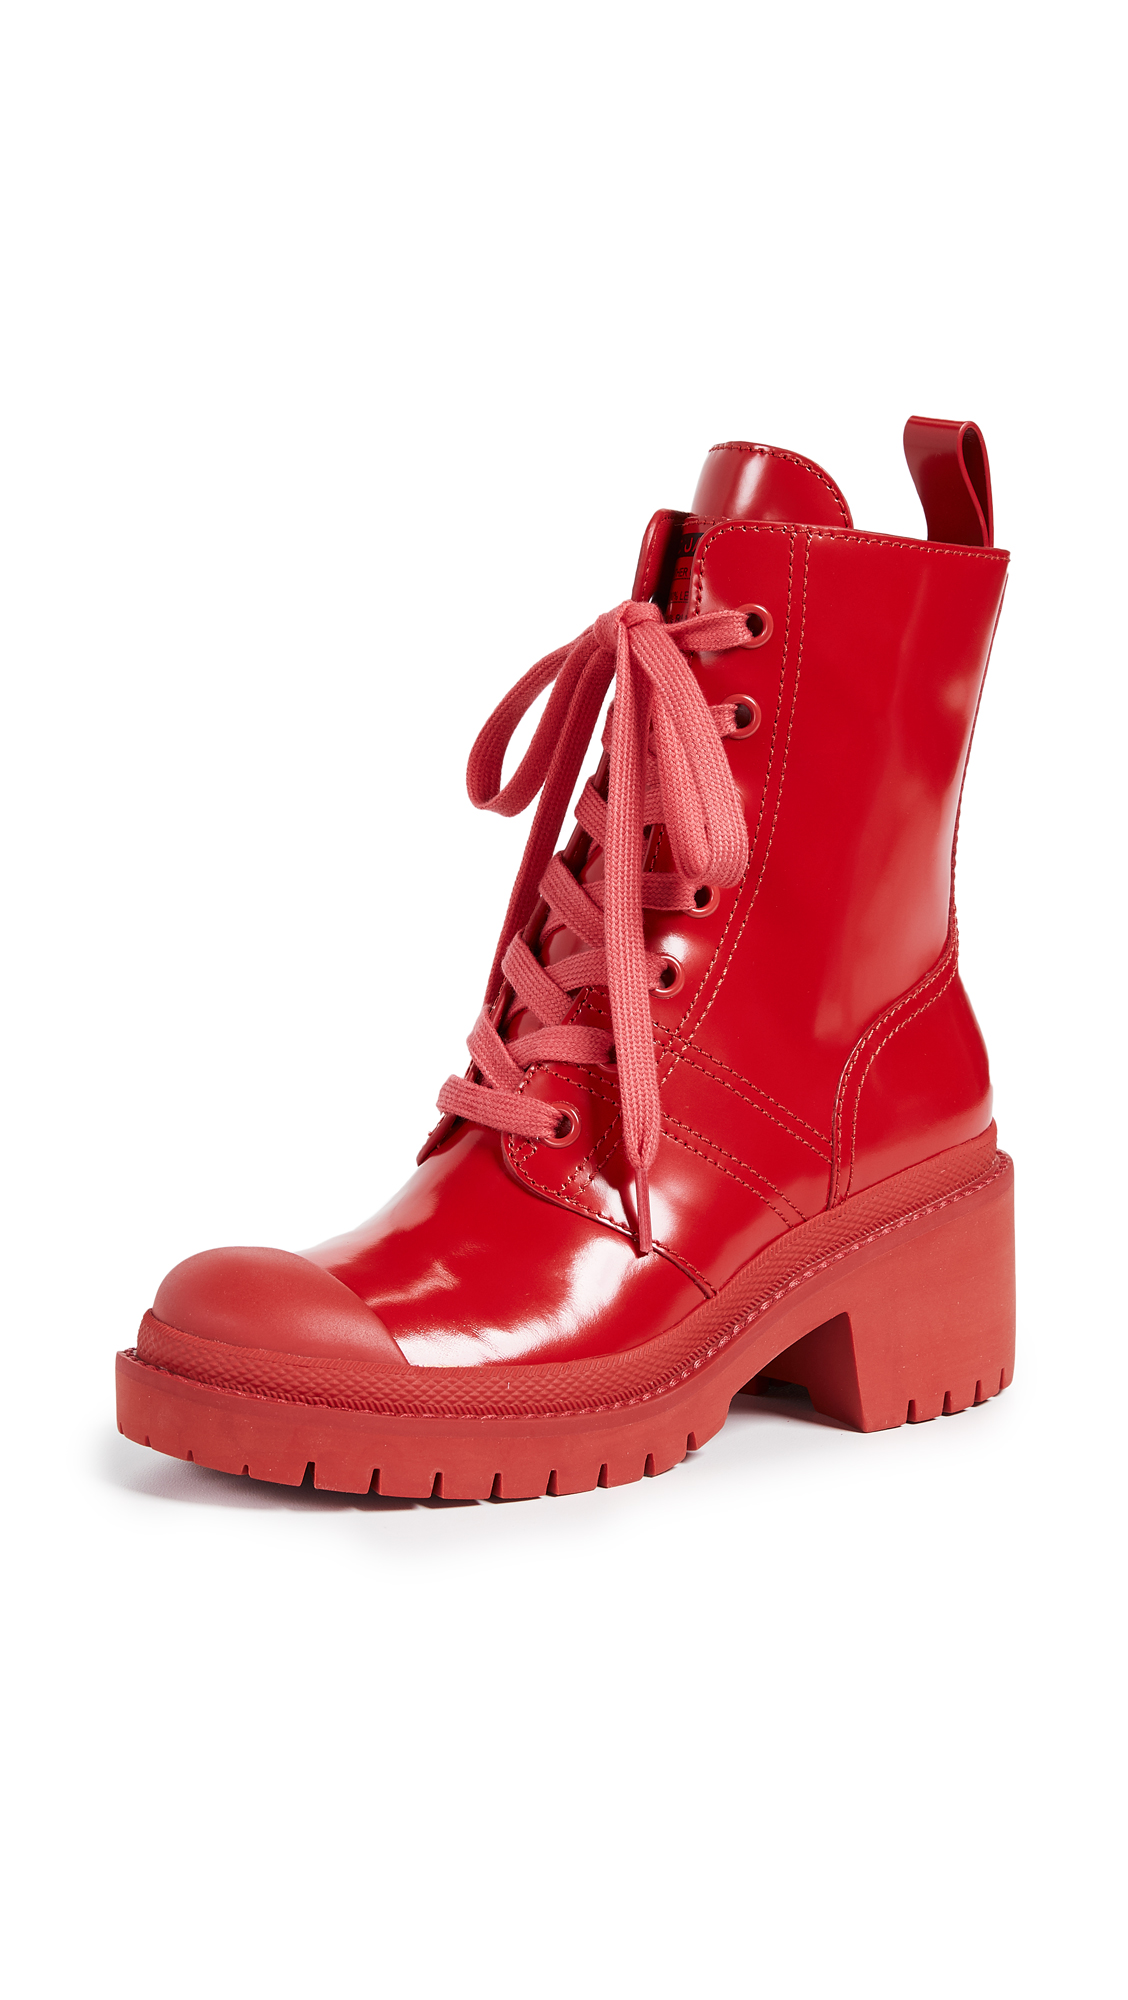 Marc Jacobs Bristol Laced Up Boots - Red